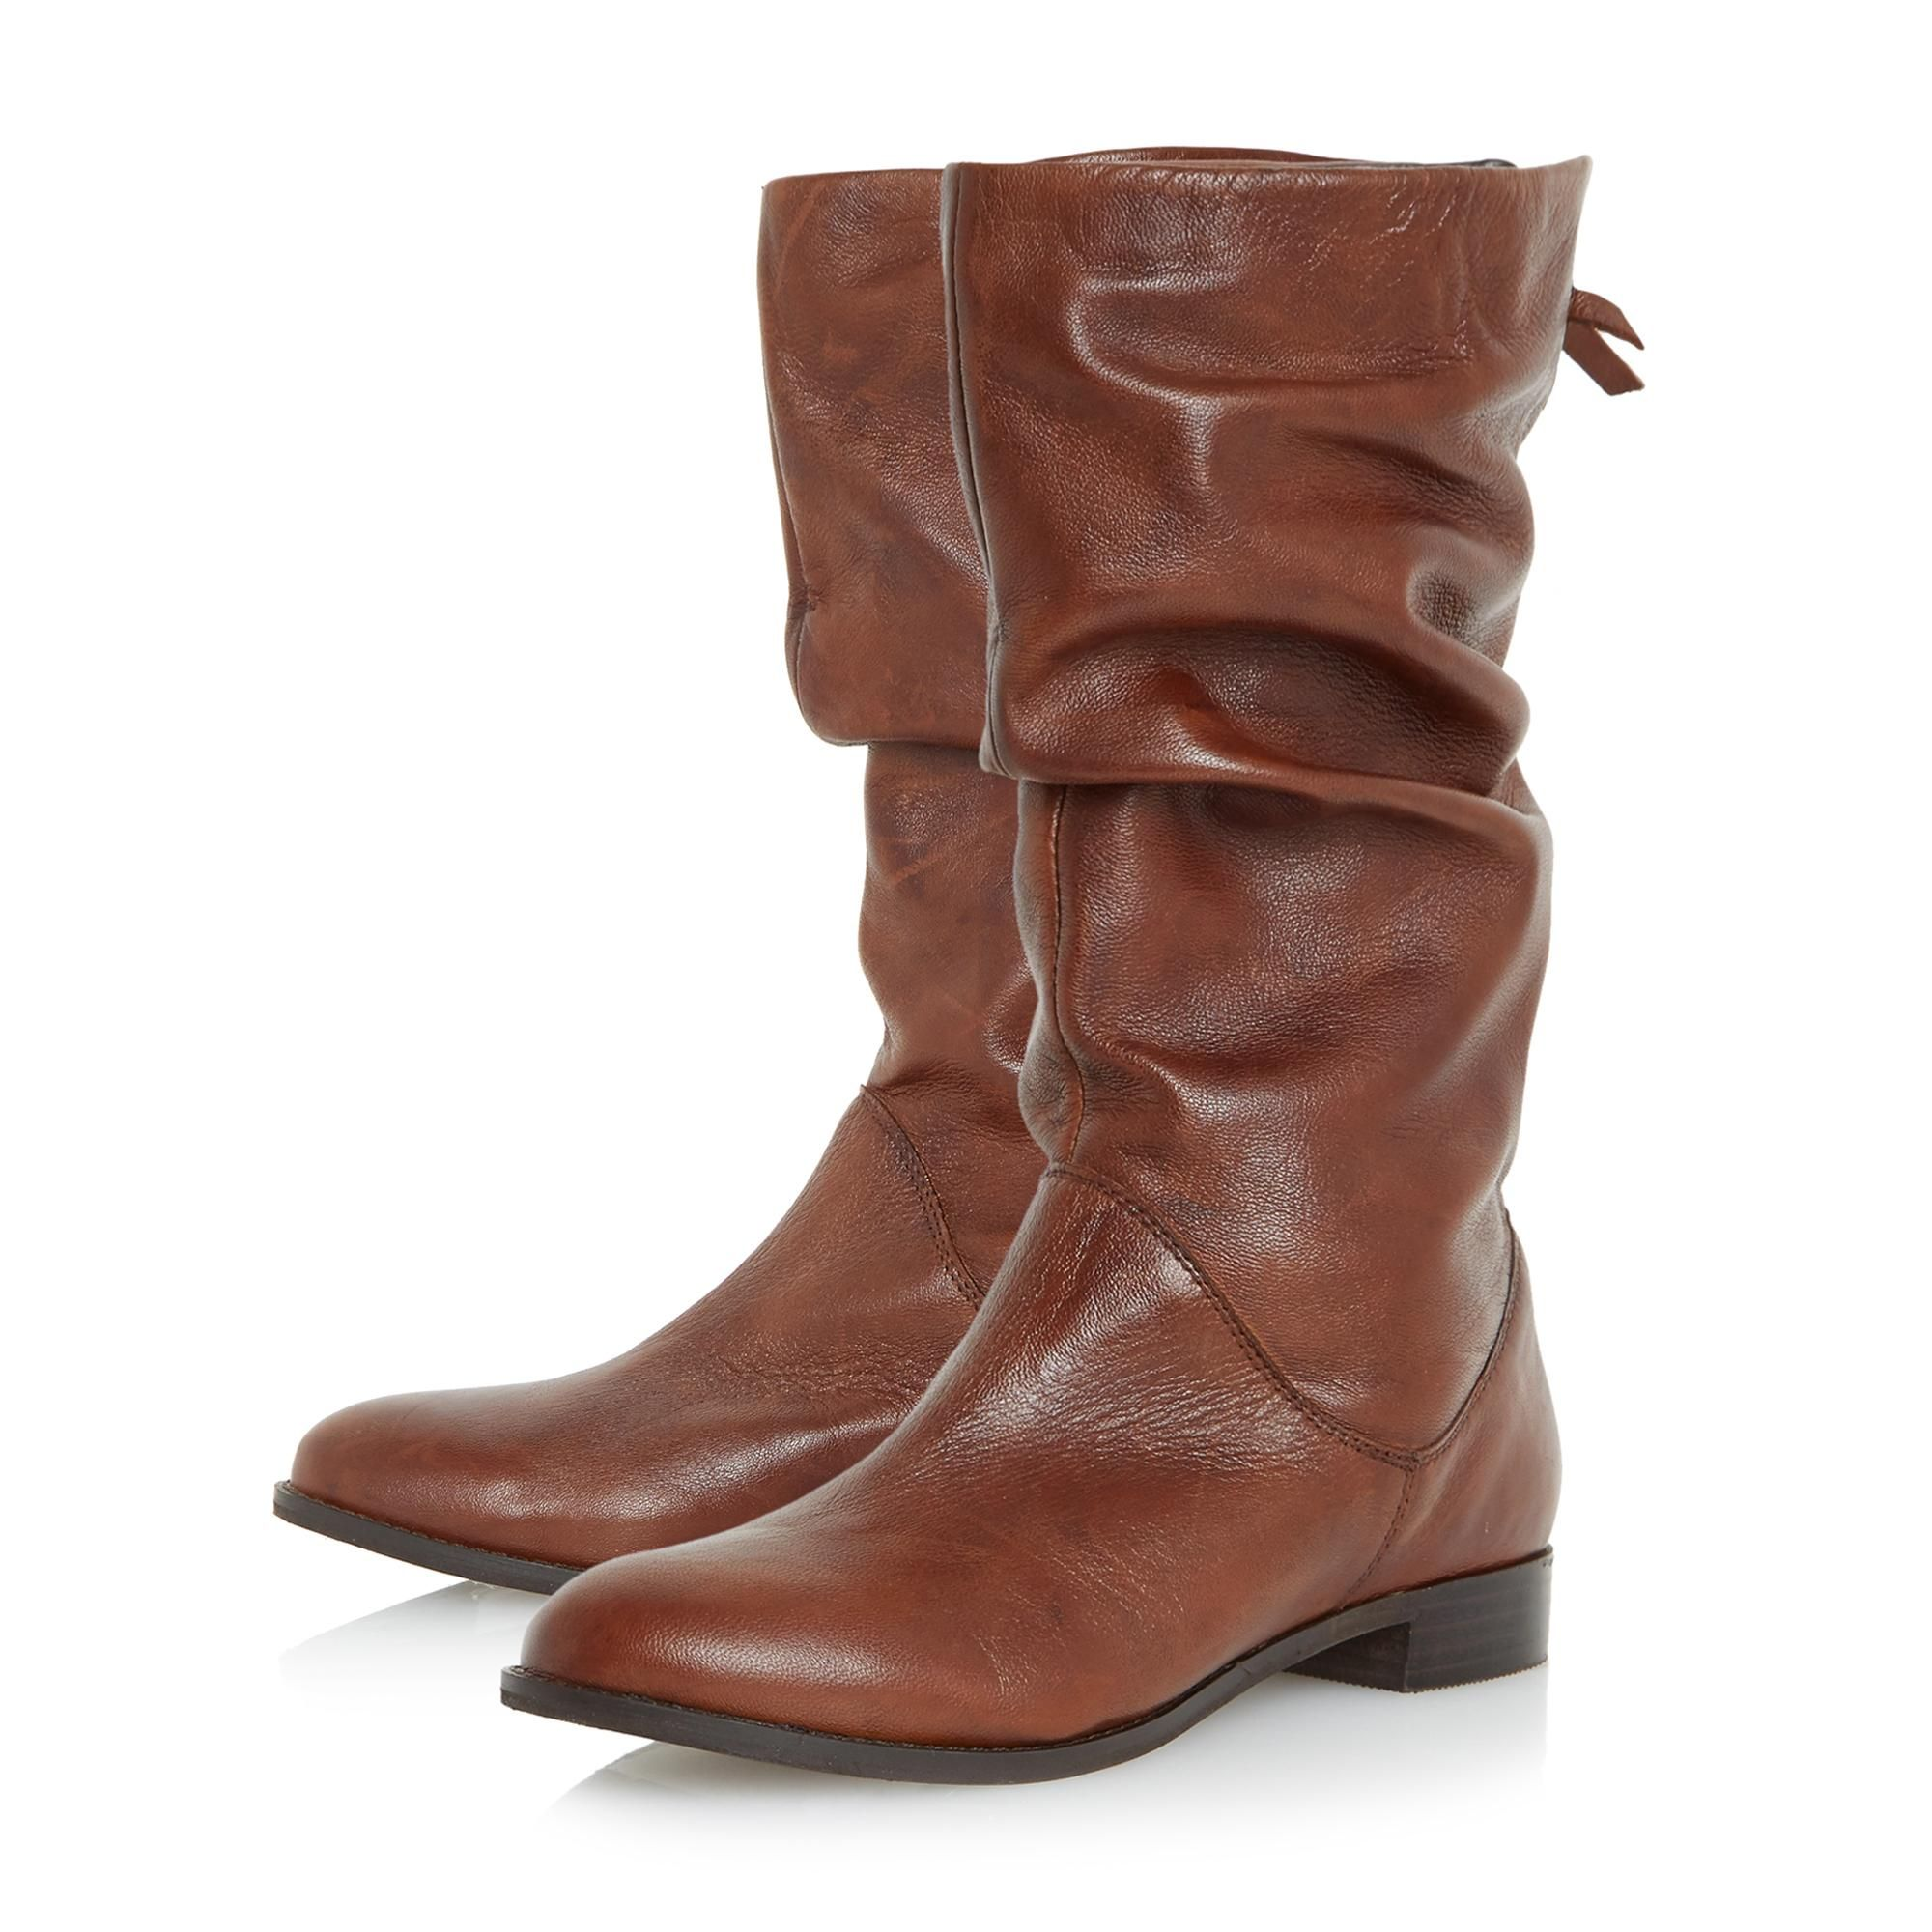 Dune Ladies ROSALIND Slip On Ruched Calf Boots